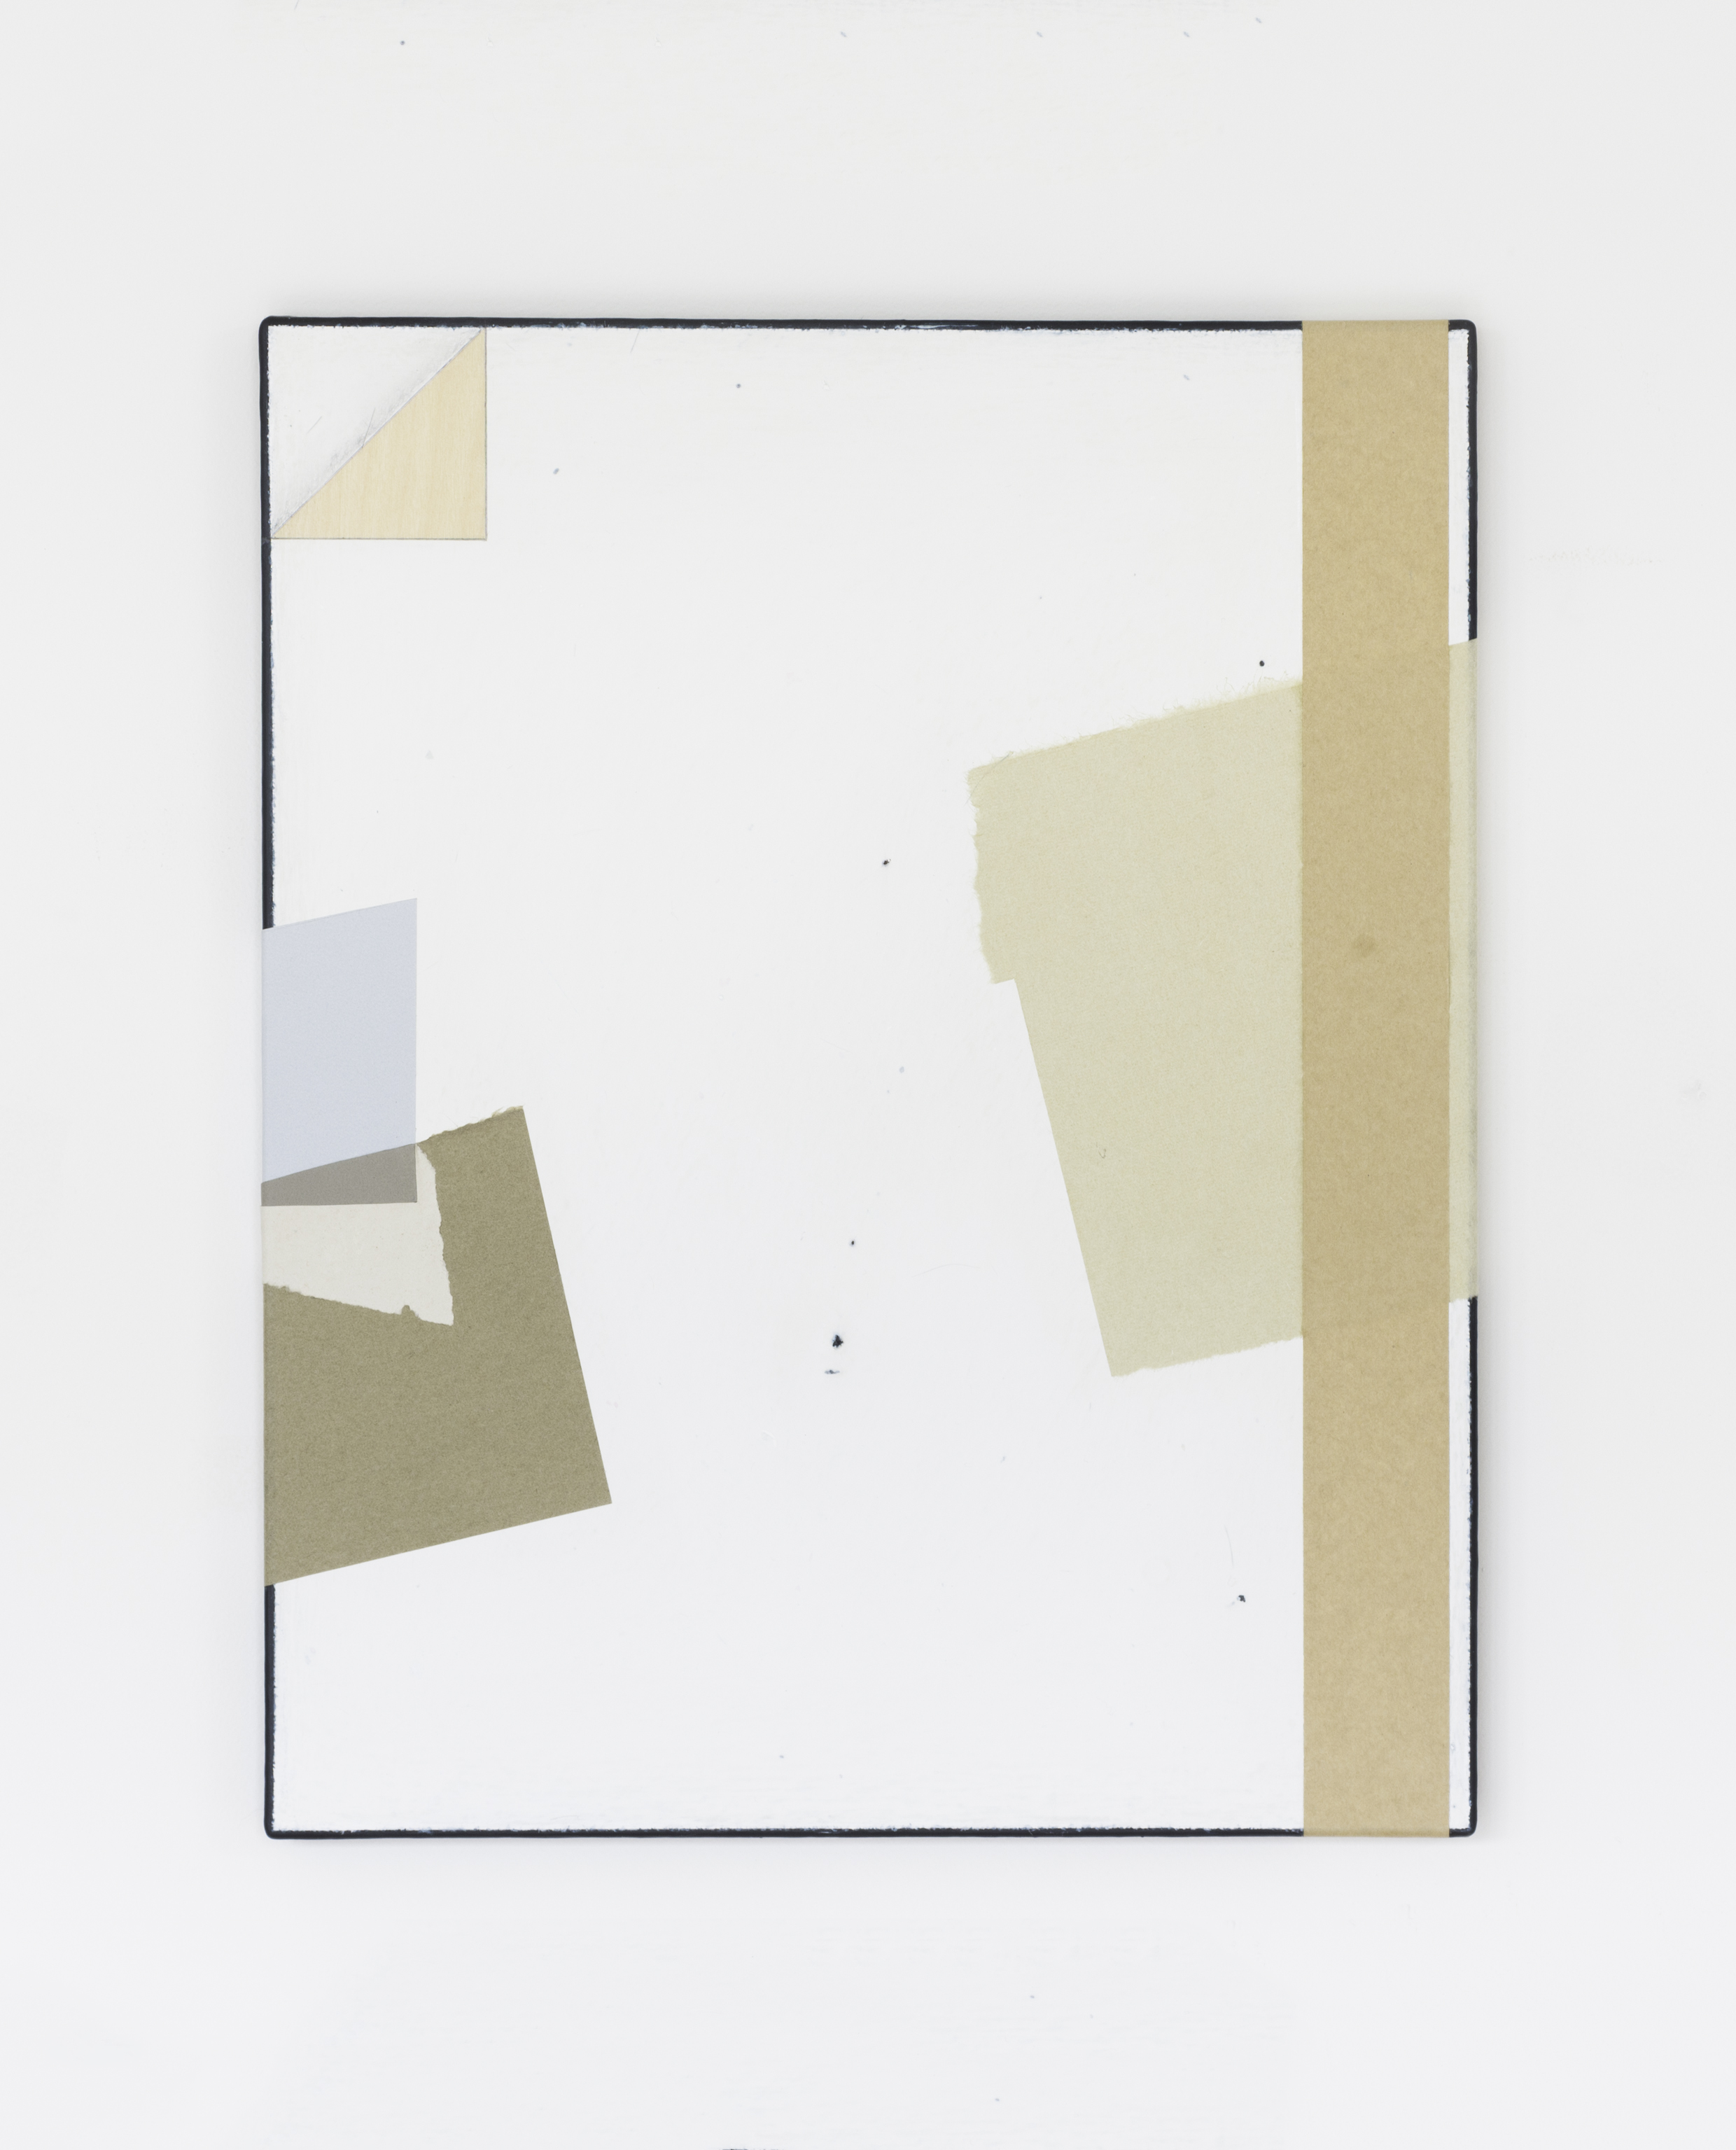 Painting No.2 2015 Awagami paper, Cole and Son wallpaper, wood veneer, gum tape, paint, linen, stretcher frame 40 x 50 cm $5000 USD